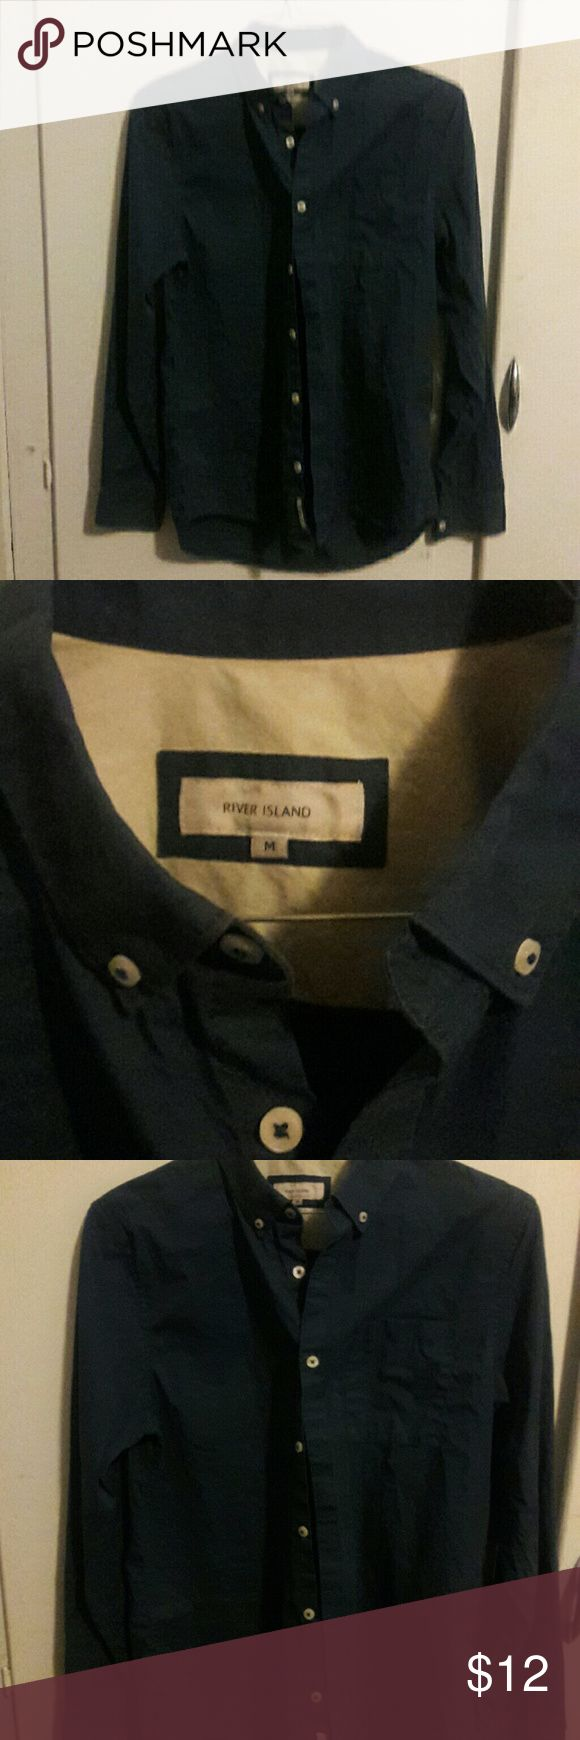 Men's button-down shirt (slim fit) by River Island This royal blue, slim fit, classy, and sporty button down shirt from River Island, is a must-have in every man's closet. Great for work or play. Made of cotton and polyester. size M. River Island Shirts Dress Shirts